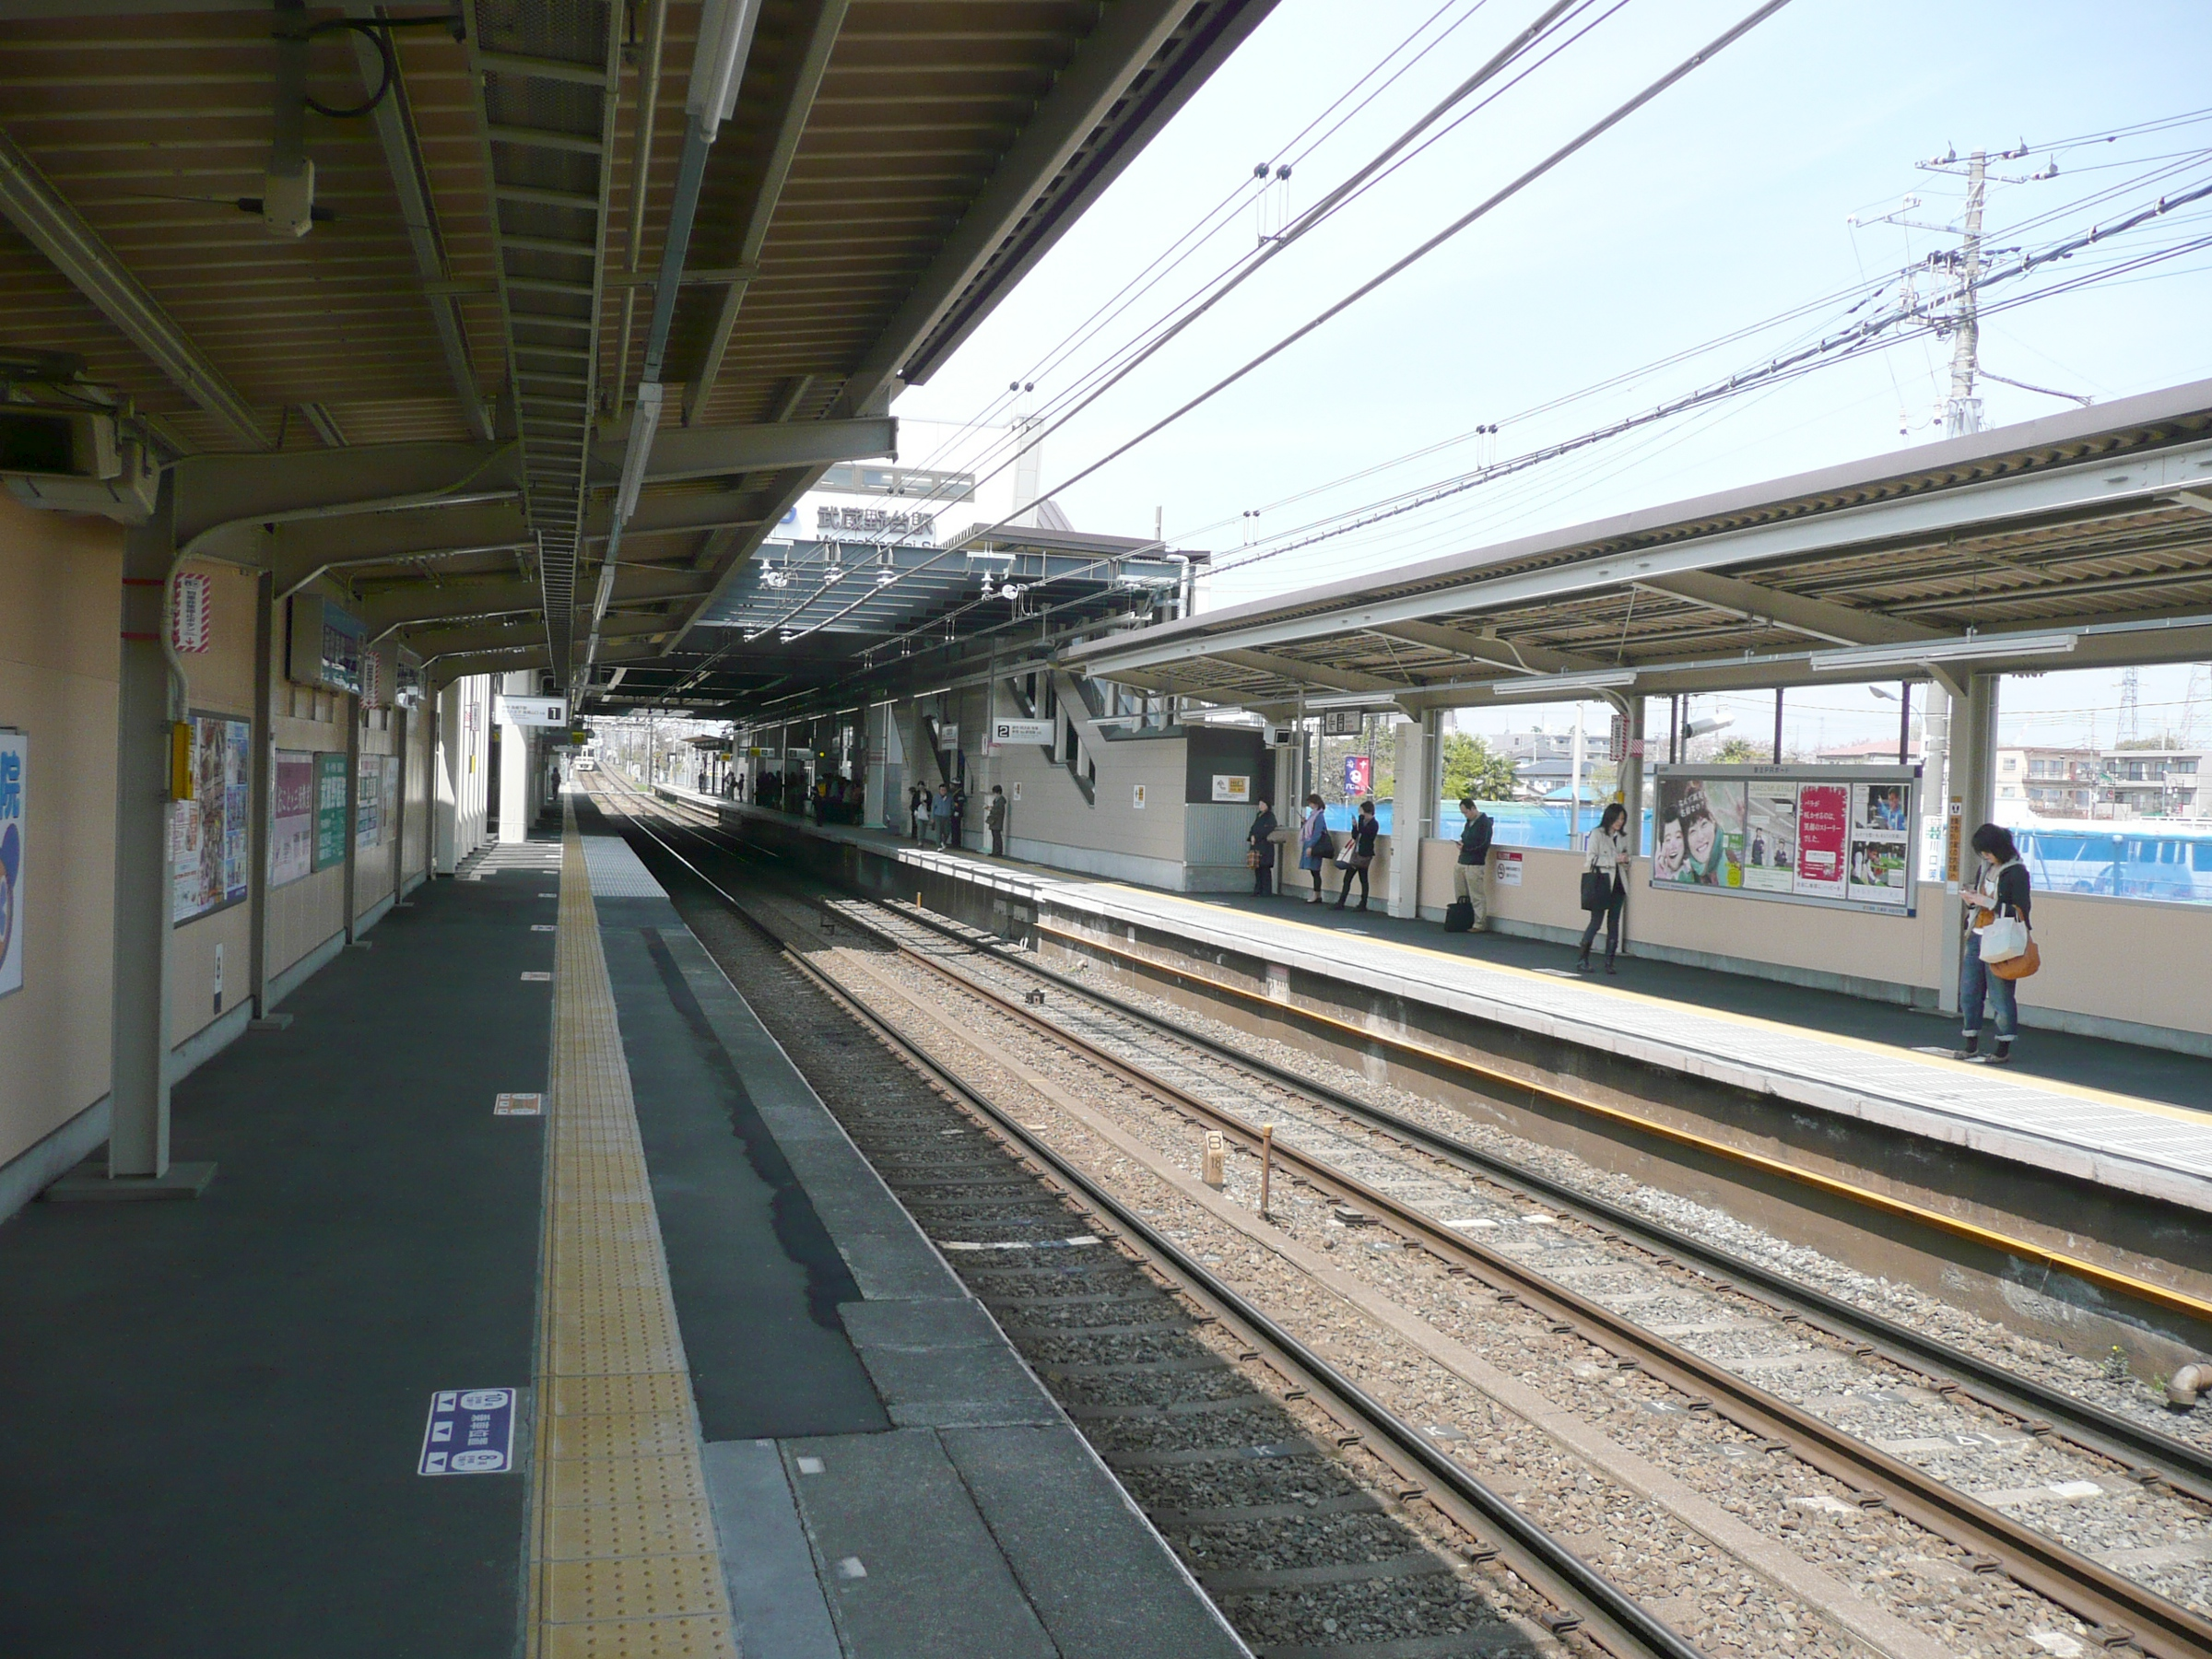 https://upload.wikimedia.org/wikipedia/commons/f/f3/Musashinodai-Sta-Platform.JPG